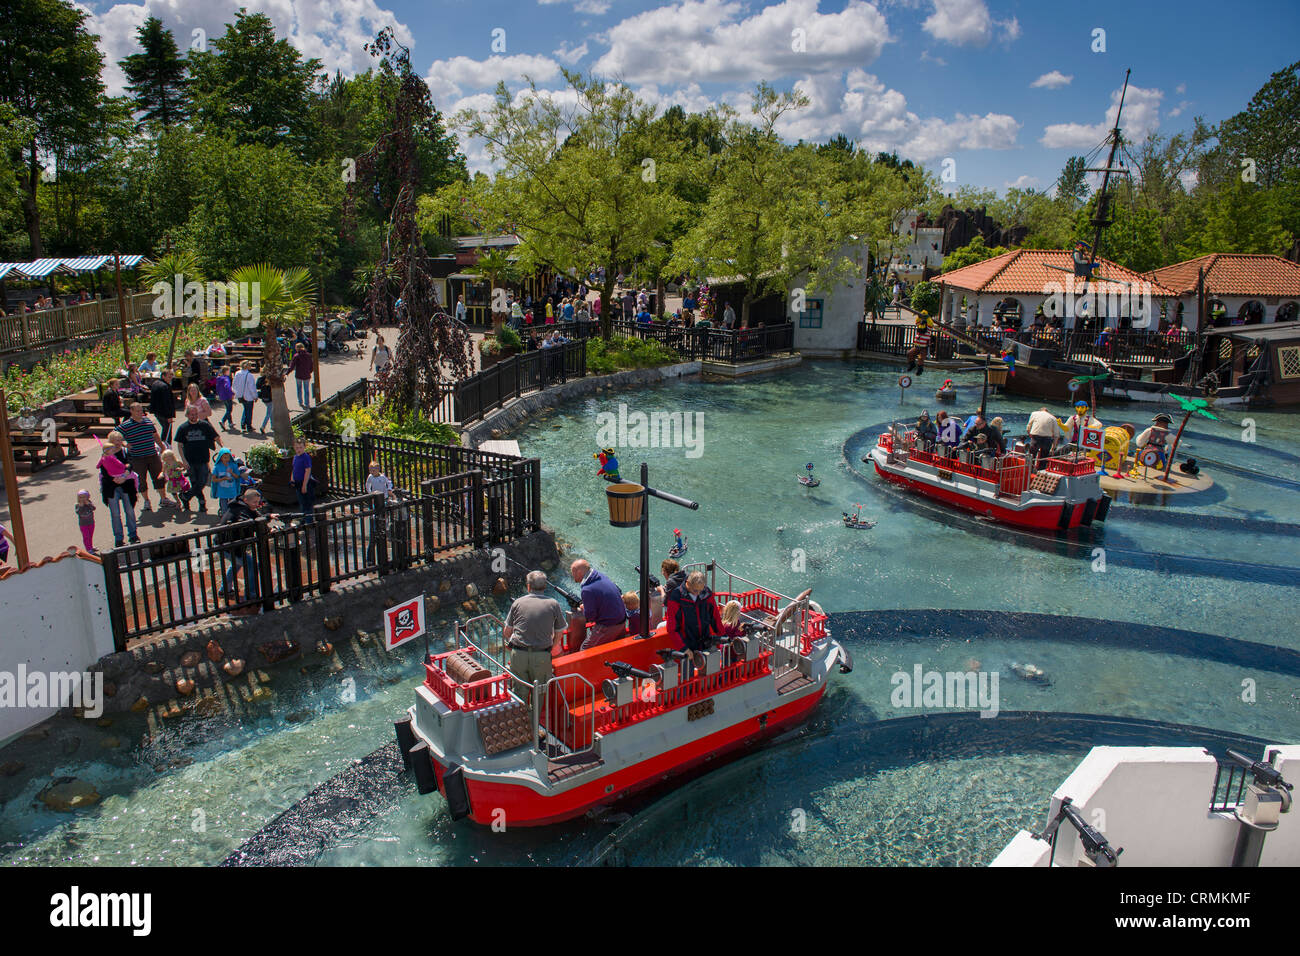 Water fights aboard Lego boats at Pirateland, Legoland, Billund, Denmark - Stock Image